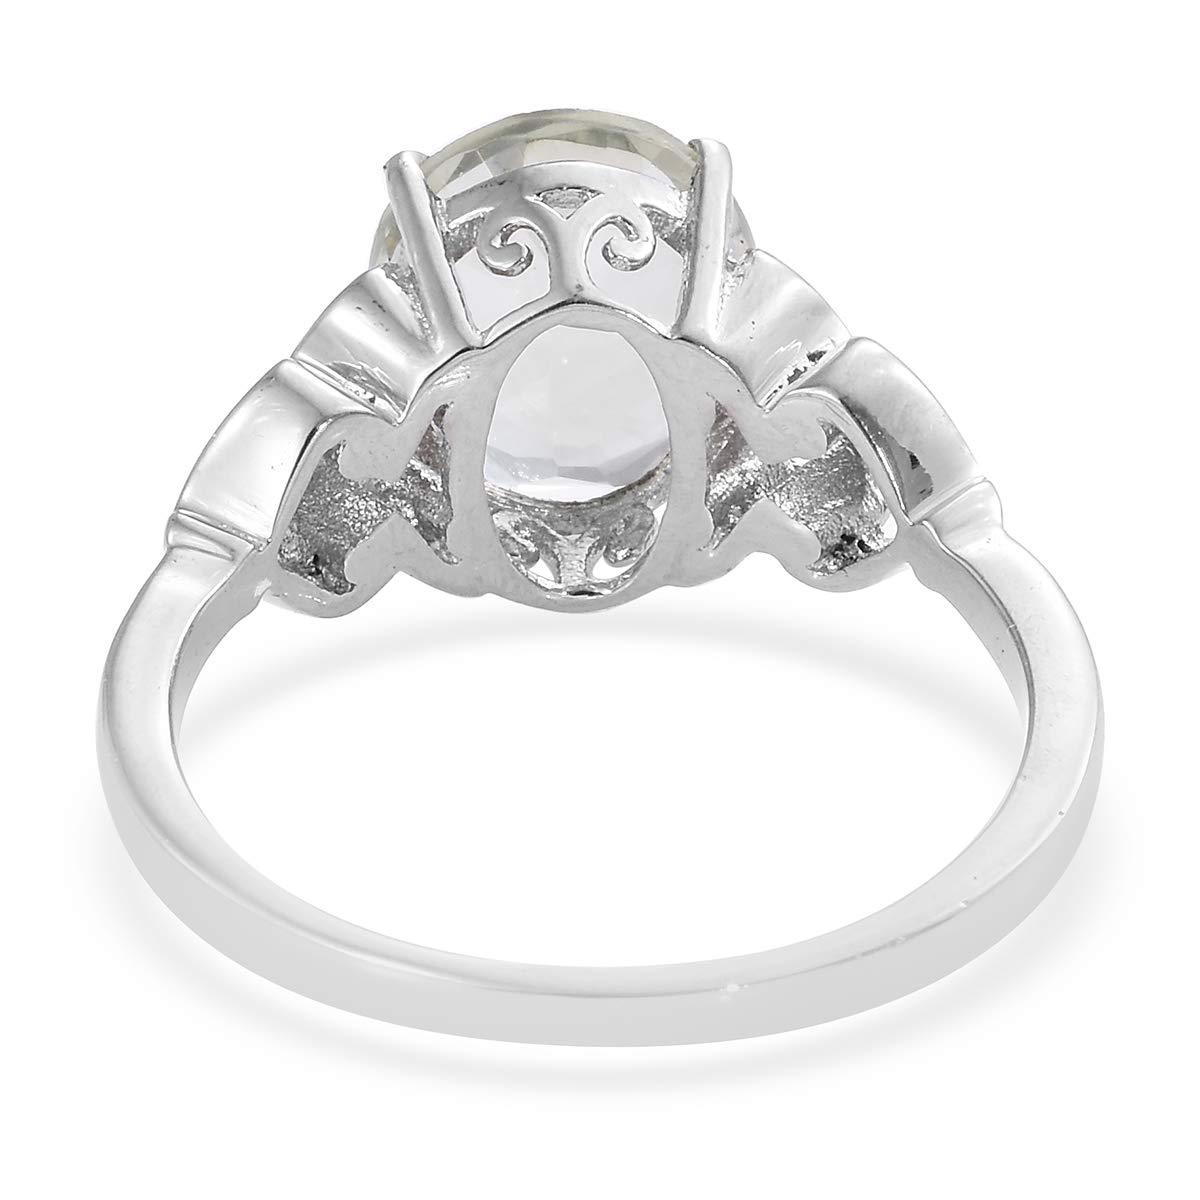 Shop LC Delivering Joy Solitaire Ring Stainless Steel Oval Green Amethyst Gift Jewelry for Women Size 10 Cttw 3.5